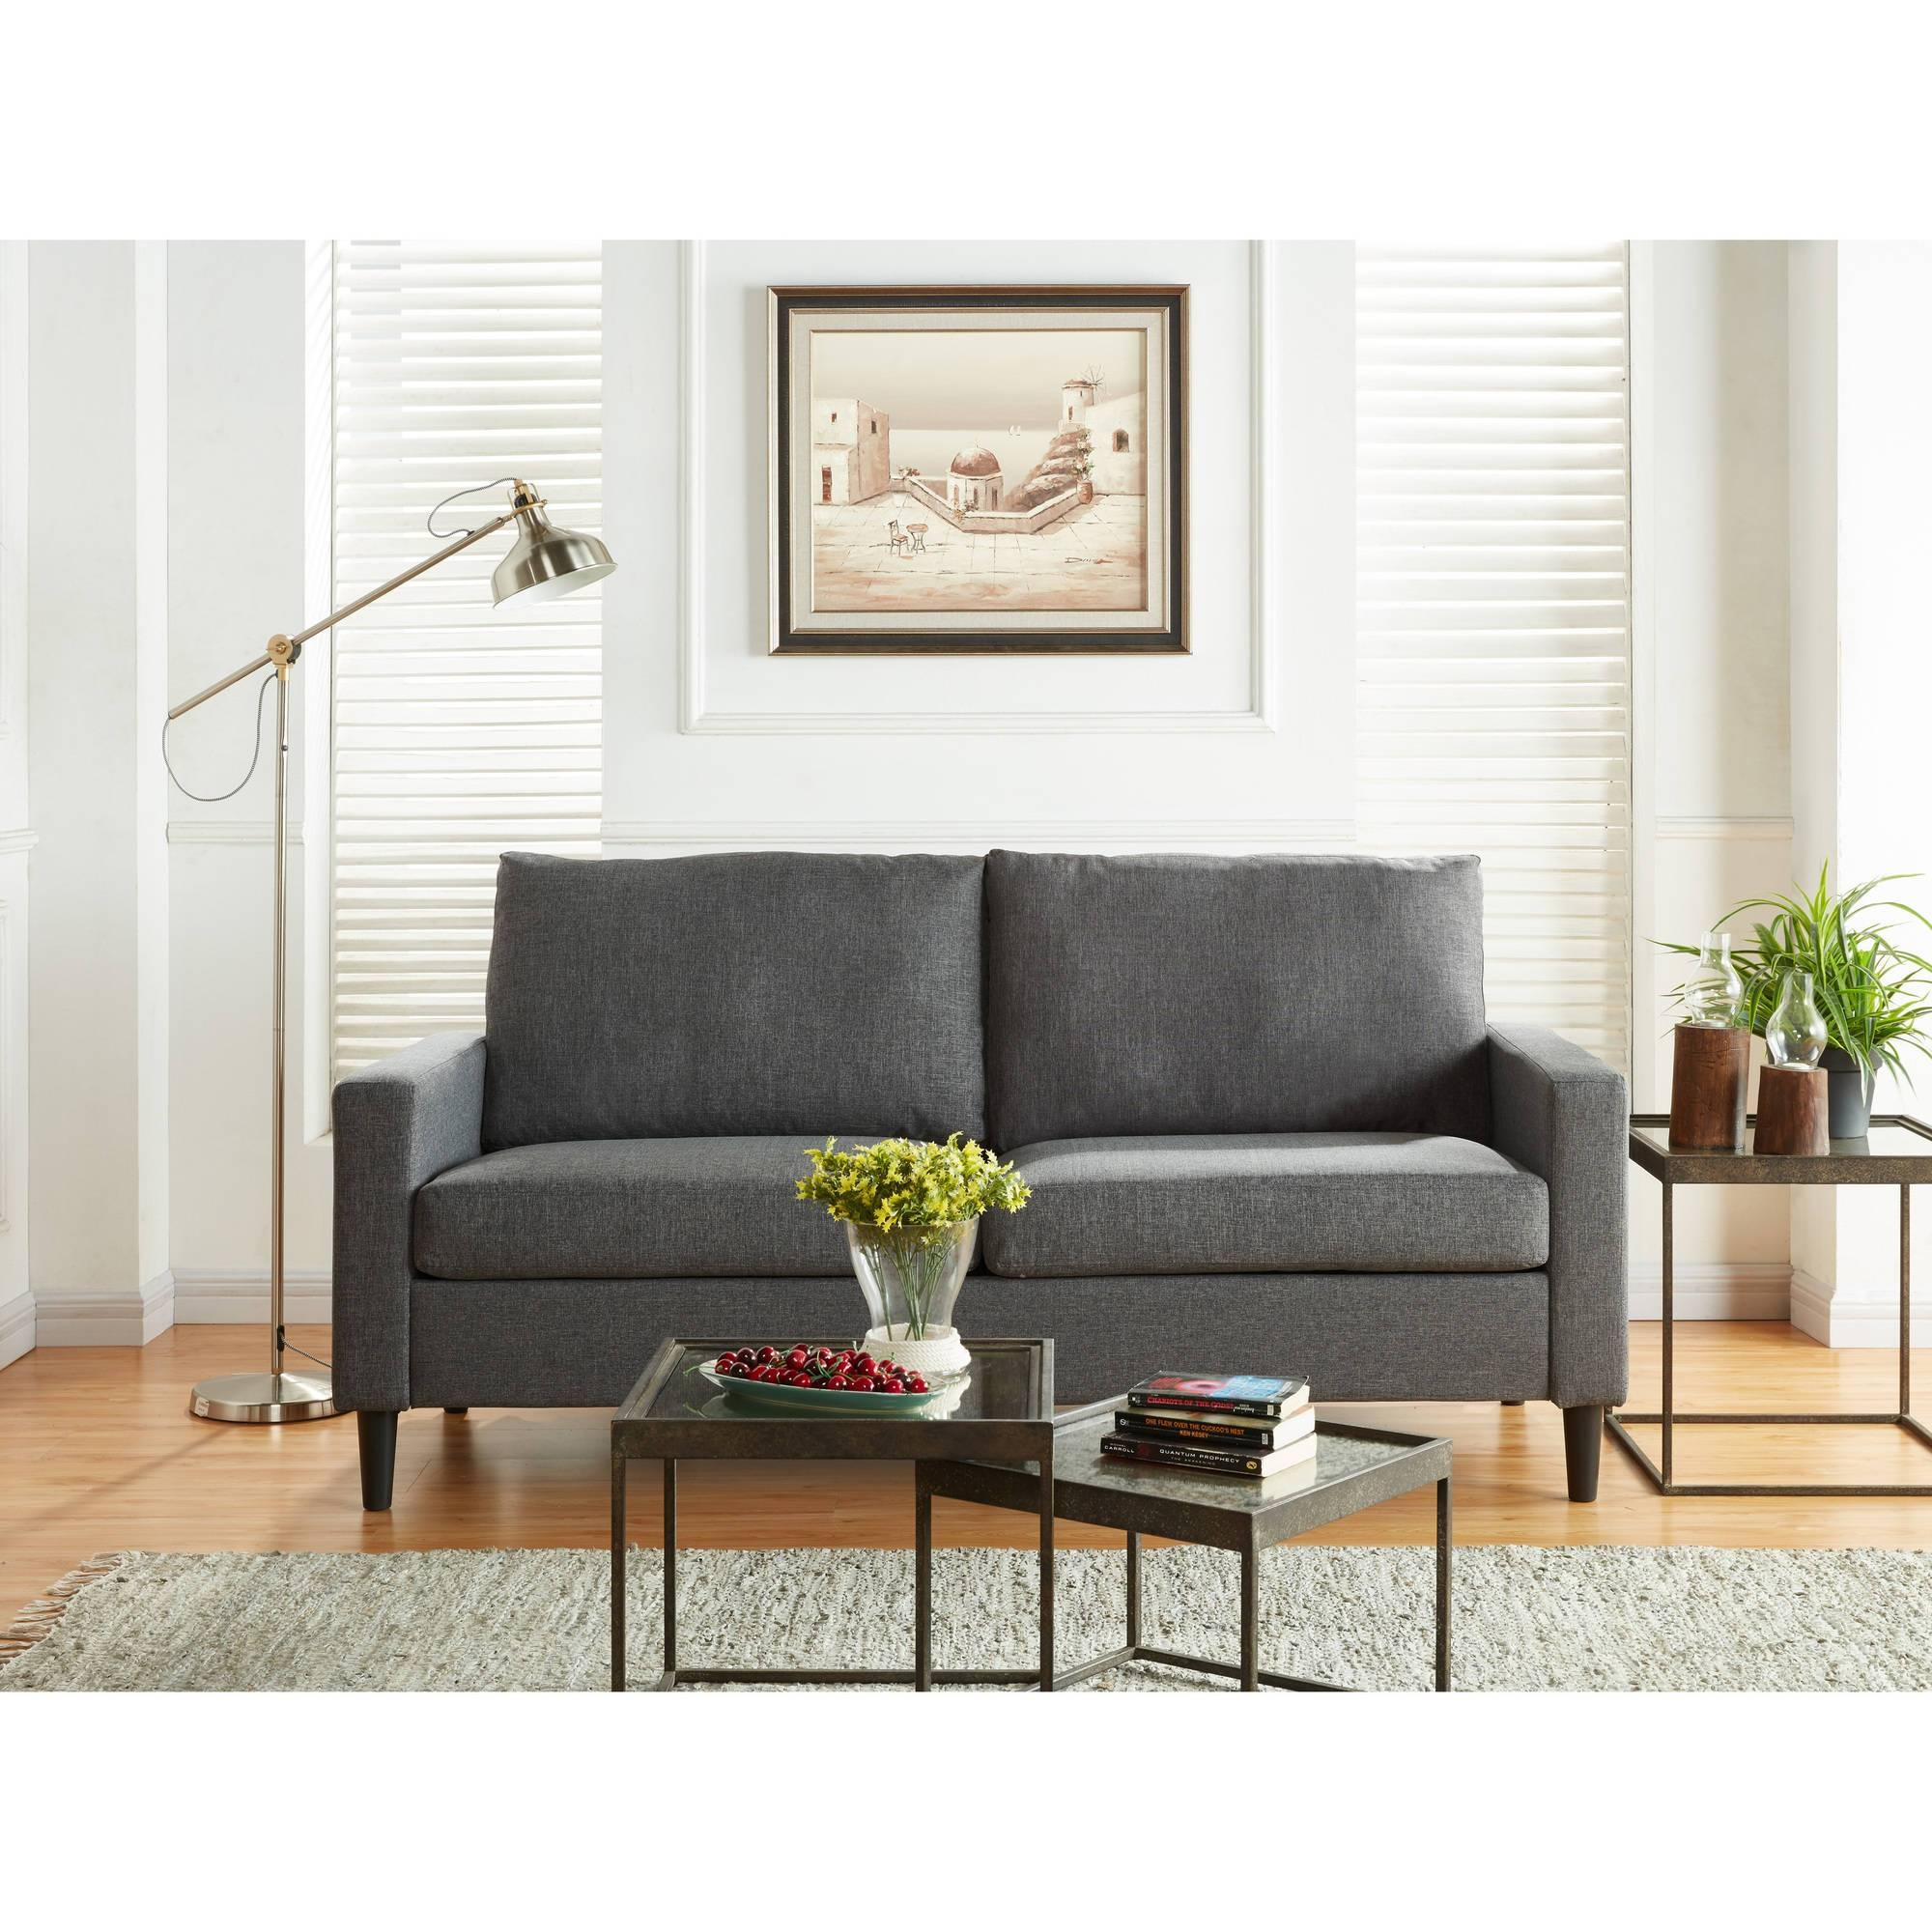 Mainstays Apartment Sofa, Multiple Colors - Walmart intended for Wallmart Sofa (Image 21 of 25)